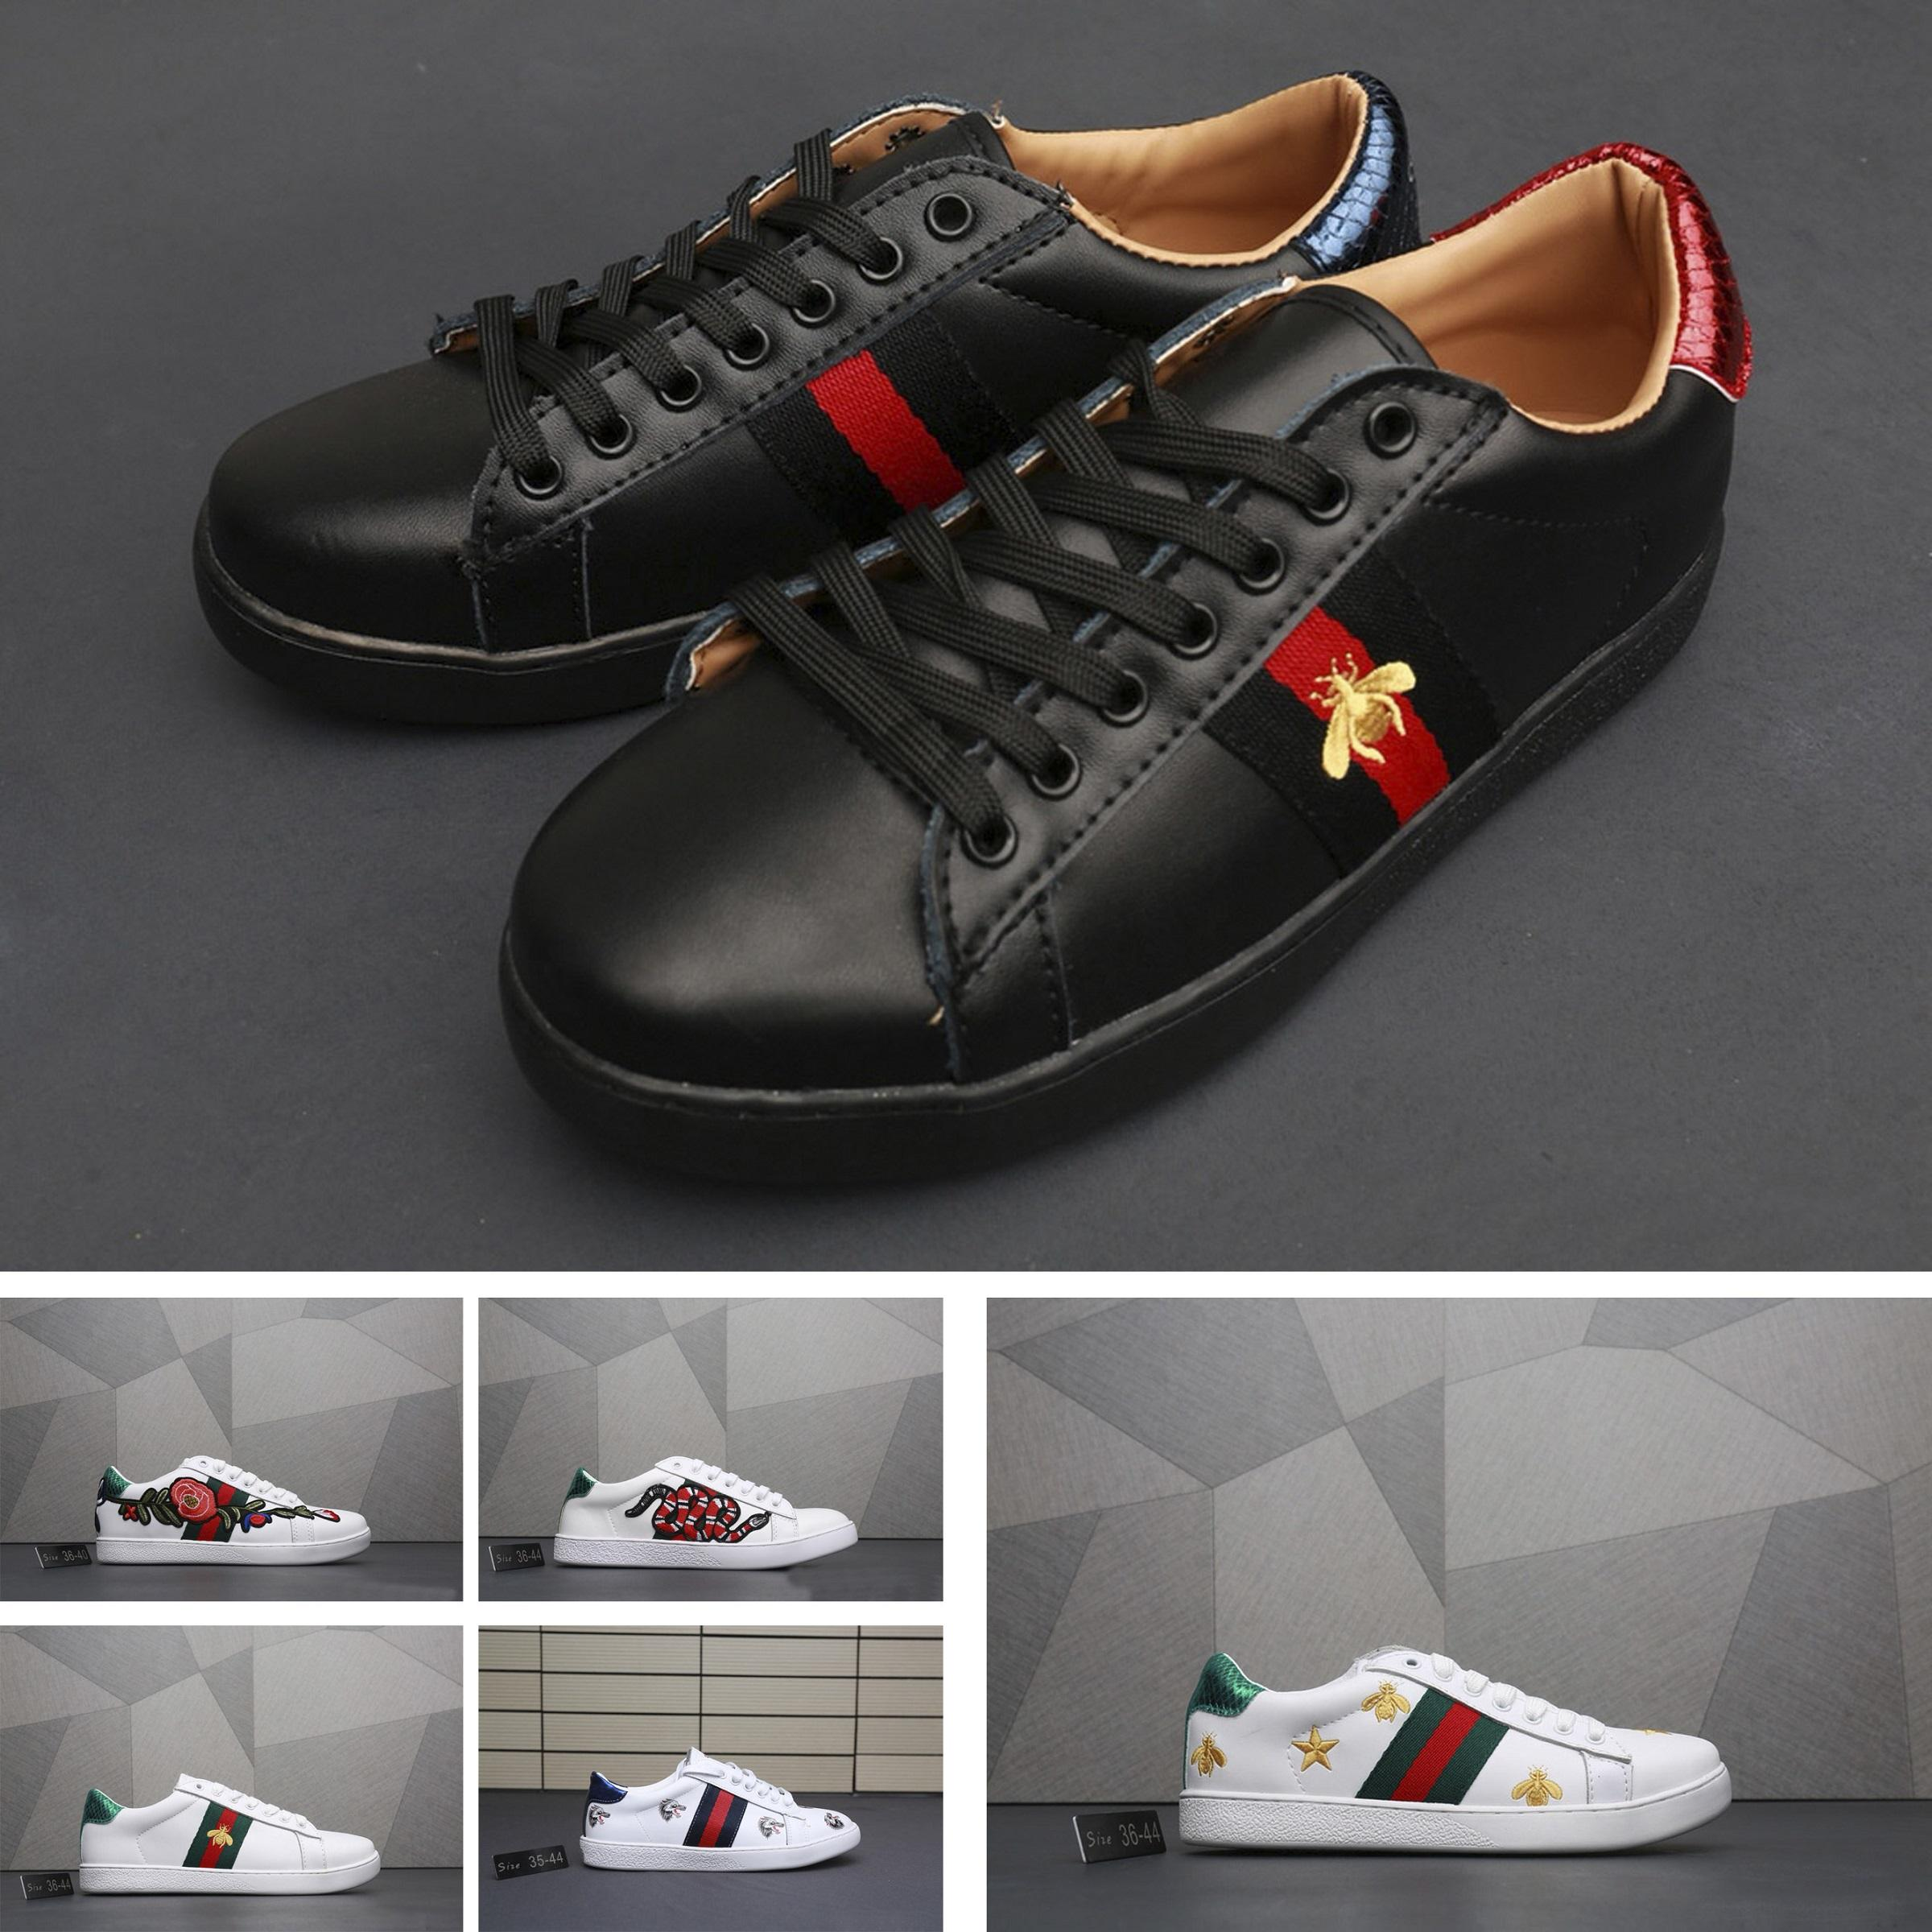 17b7defe3f3 Best selling mens shoes white little white bee love pearl rivet jpg  2400x2400 Little white shoe